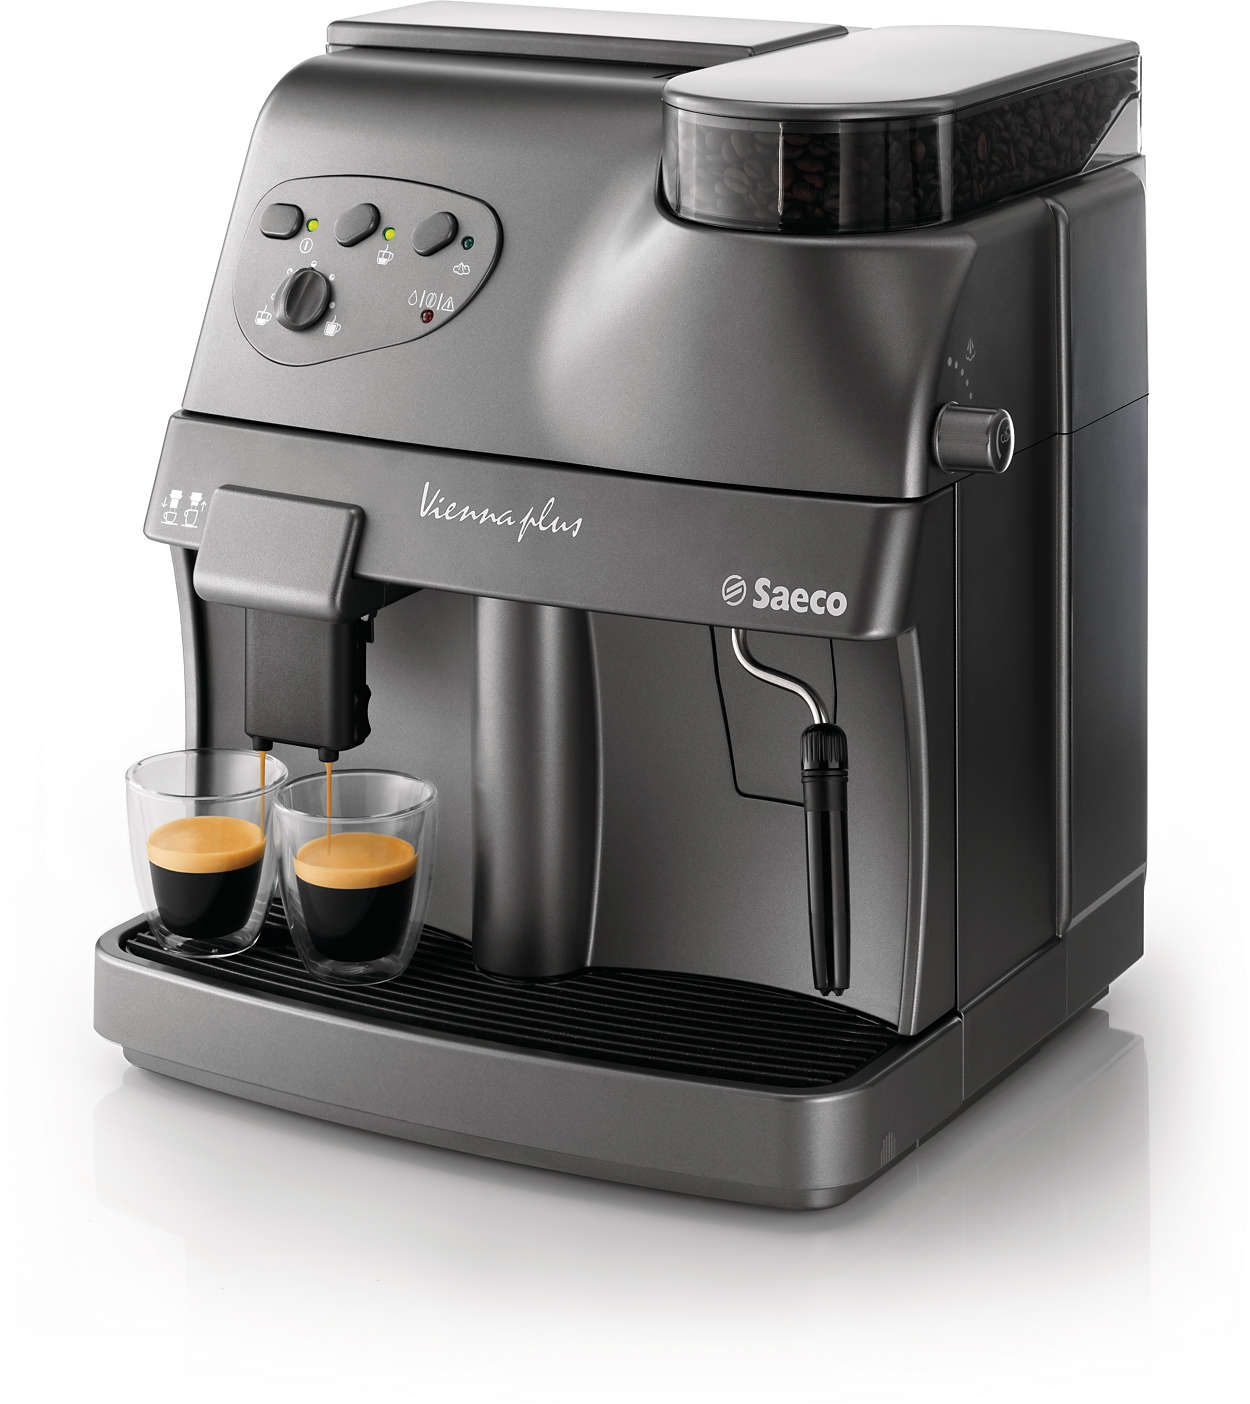 vienna super automatic espresso machine ri9737 21 saeco. Black Bedroom Furniture Sets. Home Design Ideas